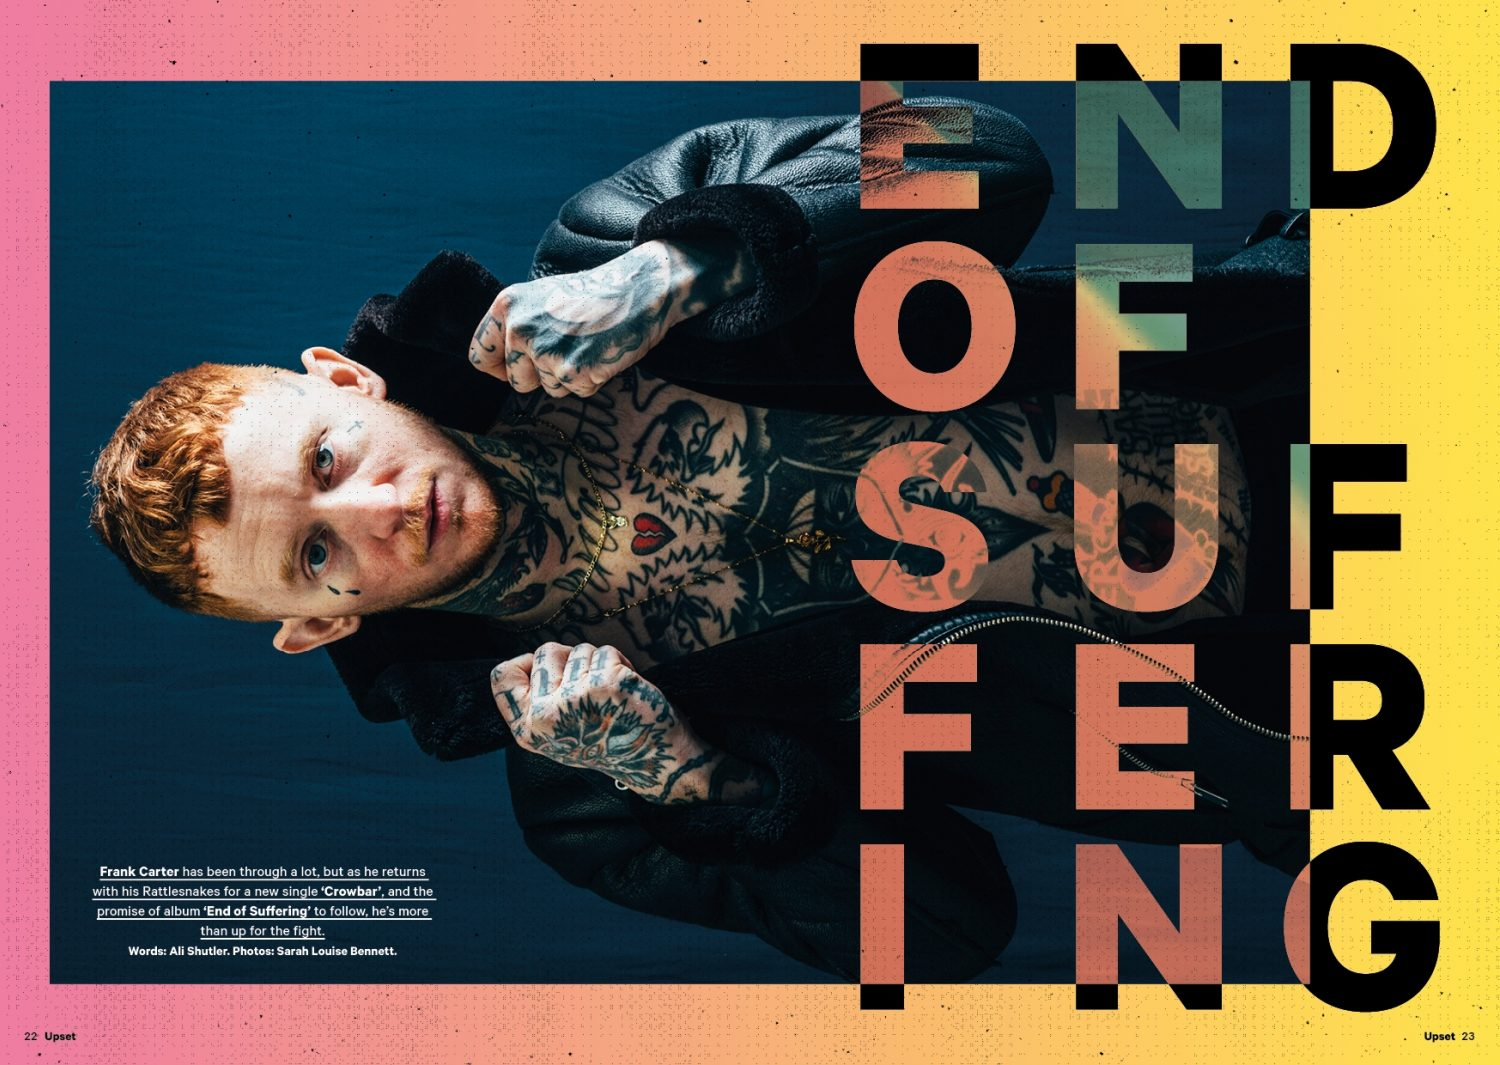 The new issue of Upset is out now, featuring Frank Carter & The Rattlesnakes!